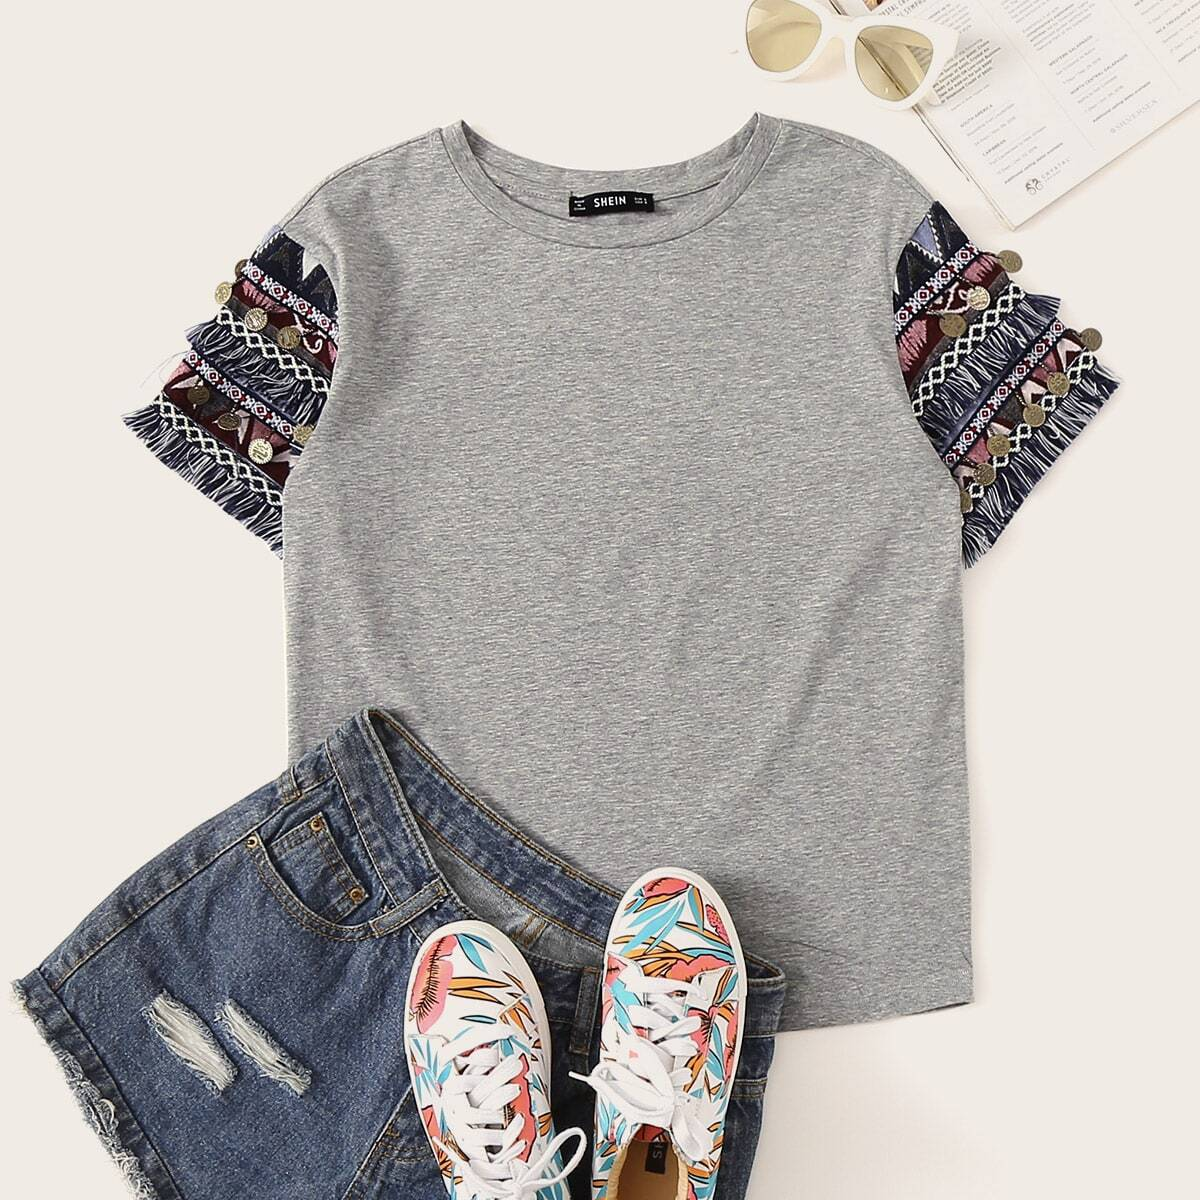 SHEIN coupon: Aztec Fringe Trim Heathered Gray Tee